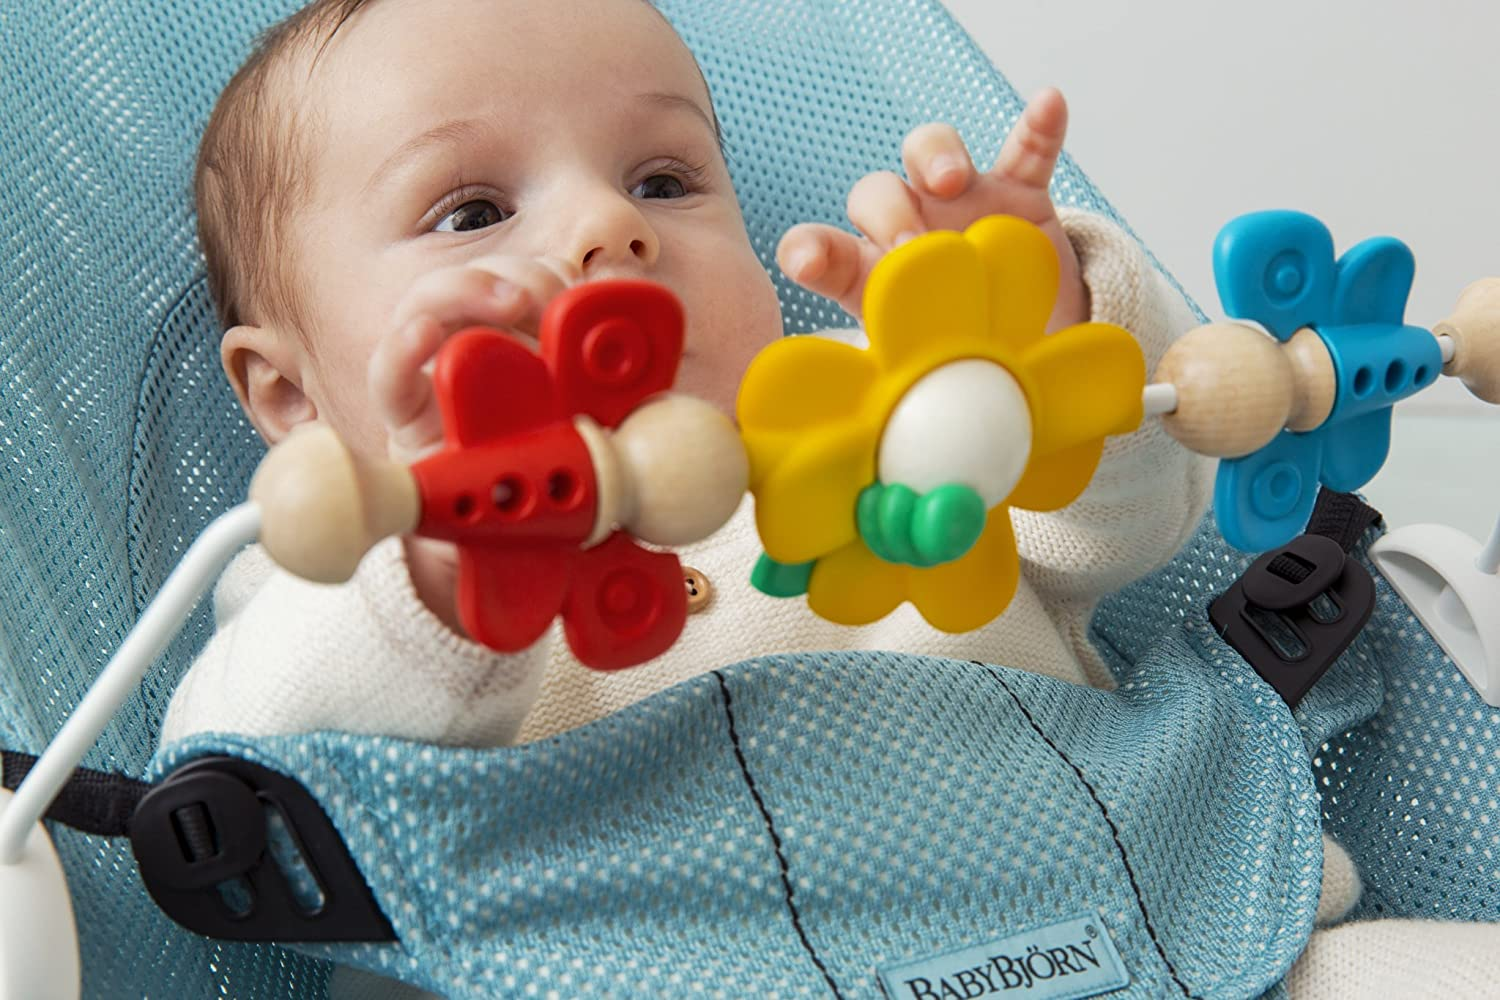 Free Shipping! BabyBjorn Baby Bjorn Wooden Toy for Baby Bouncer Googly Eyes